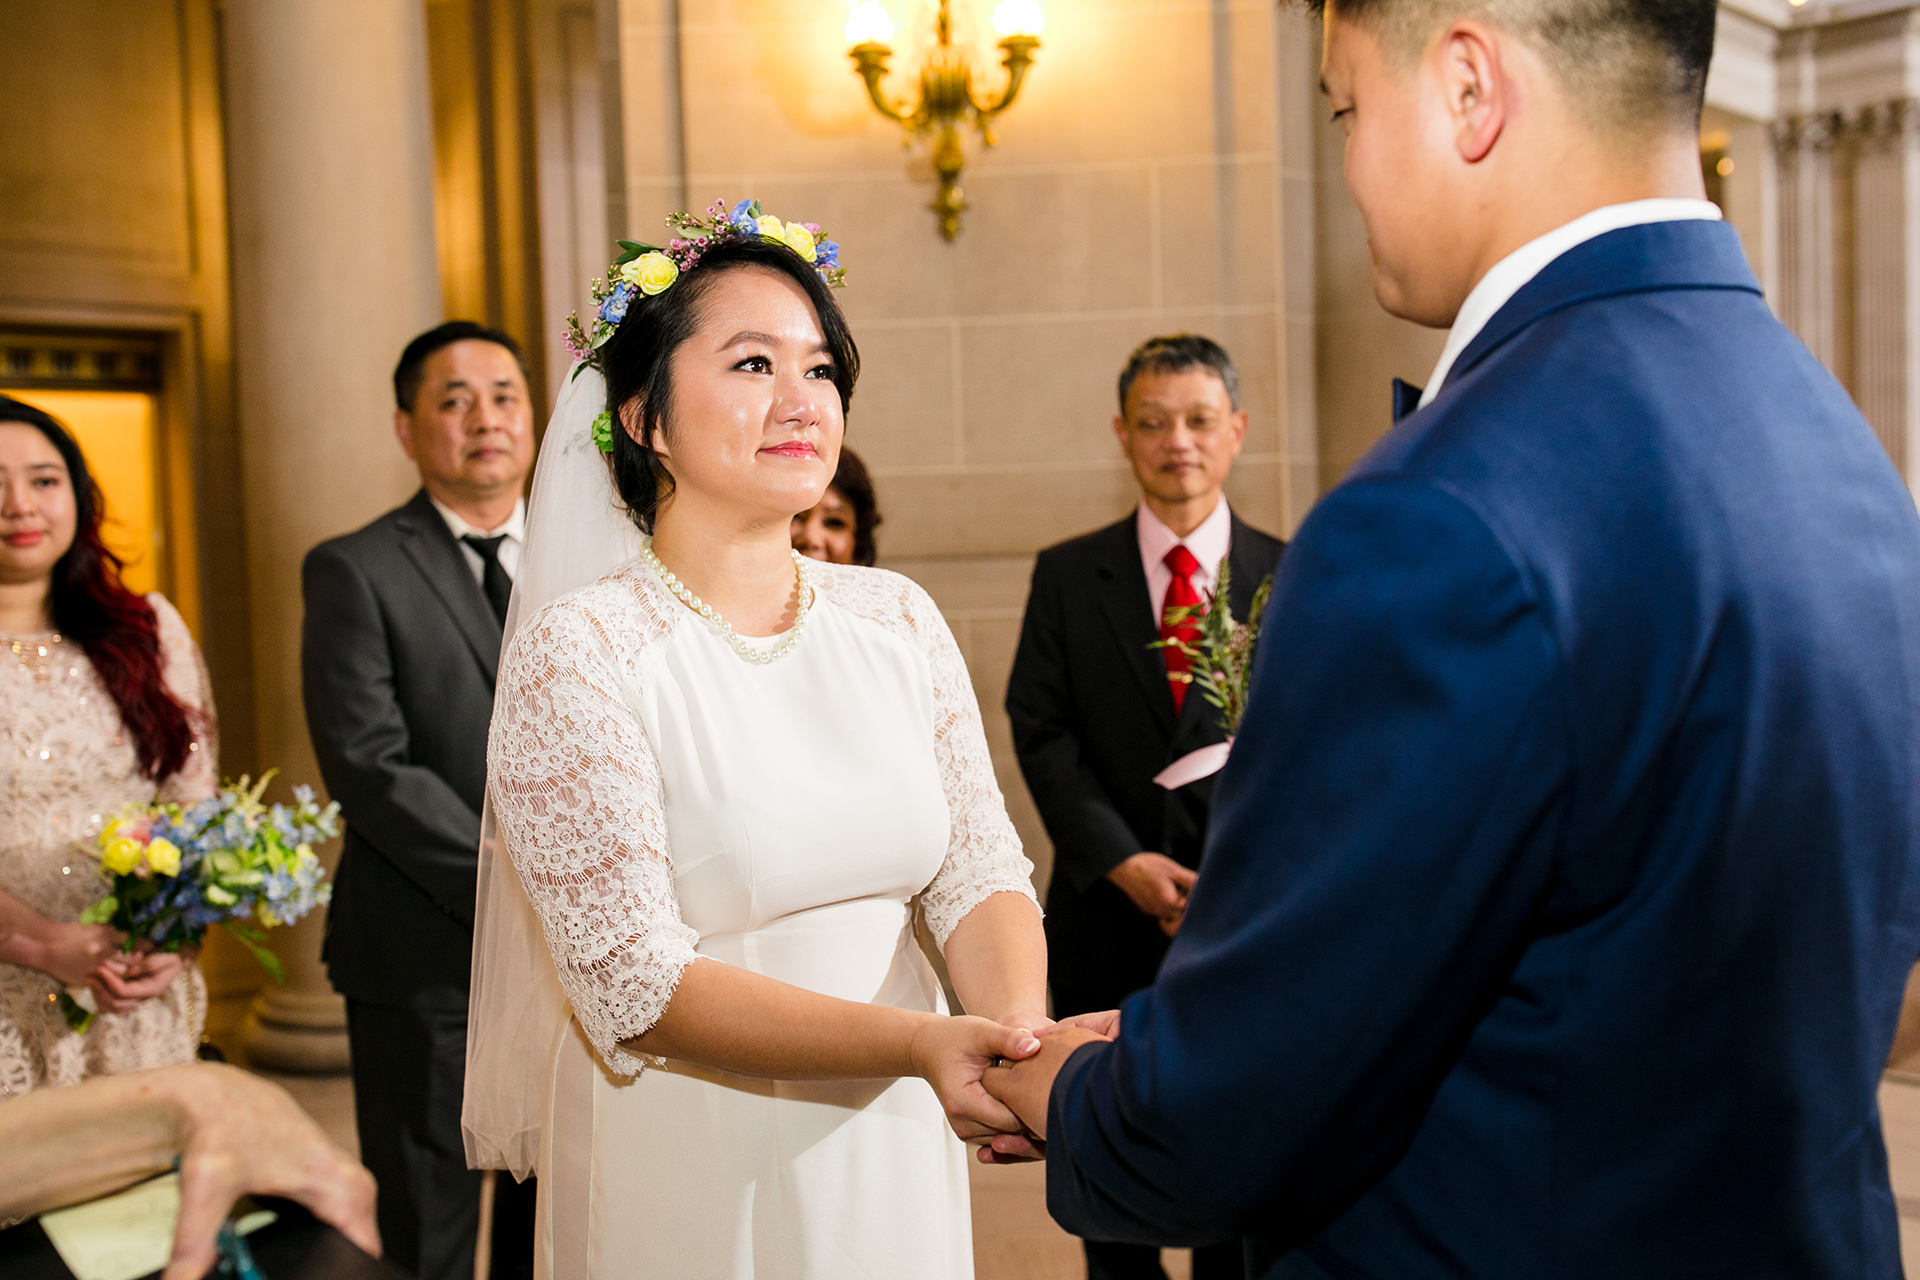 Wedding Photographers for San Francisco City Hall Elopements | During the ceremony, as the couple holds hands